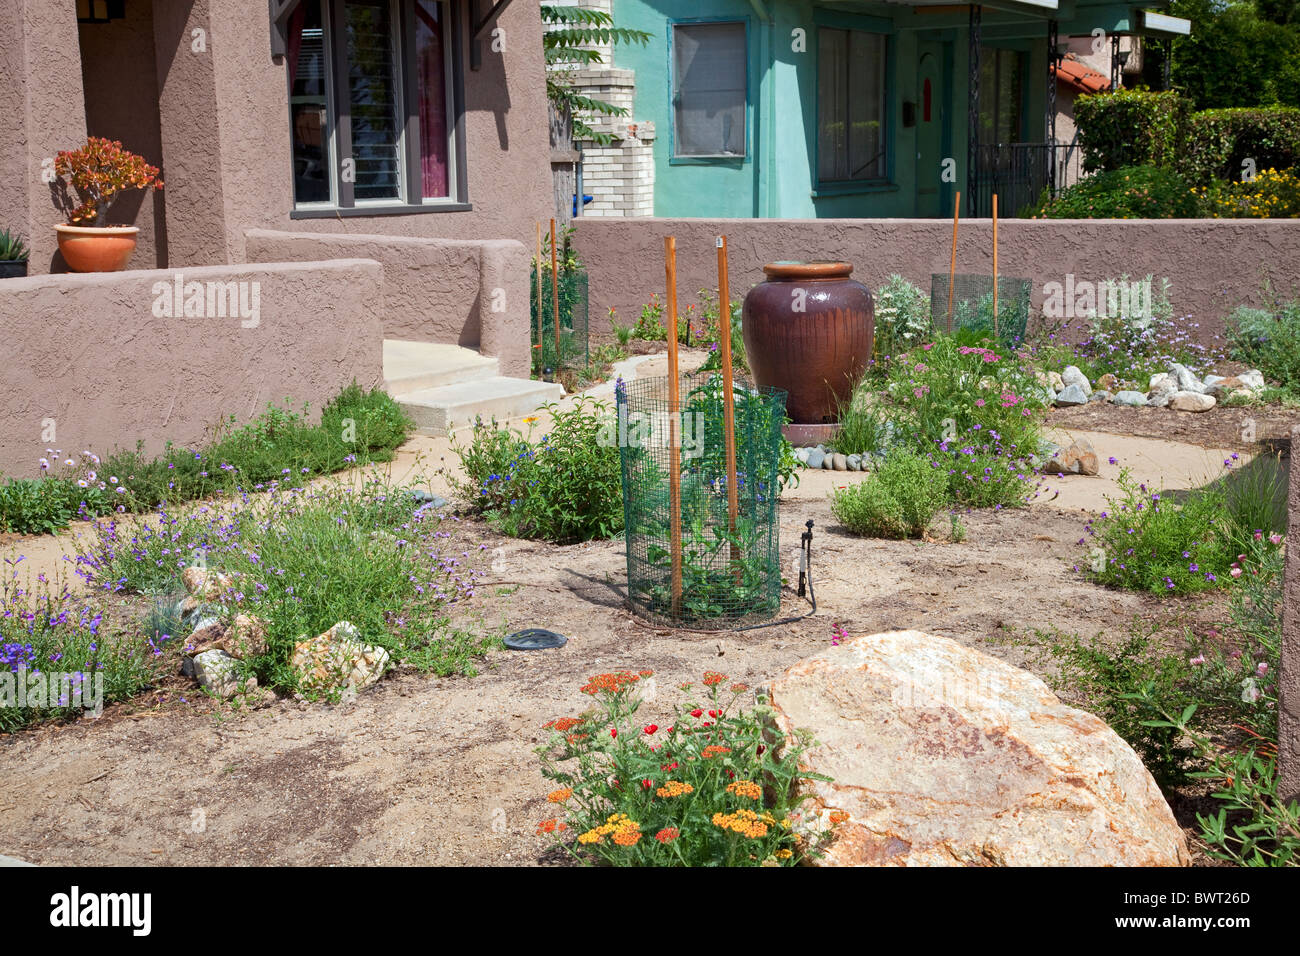 Charmant Drought Tolerant Garden, Atwater Village, Los Angeles, California, USA    Stock Image